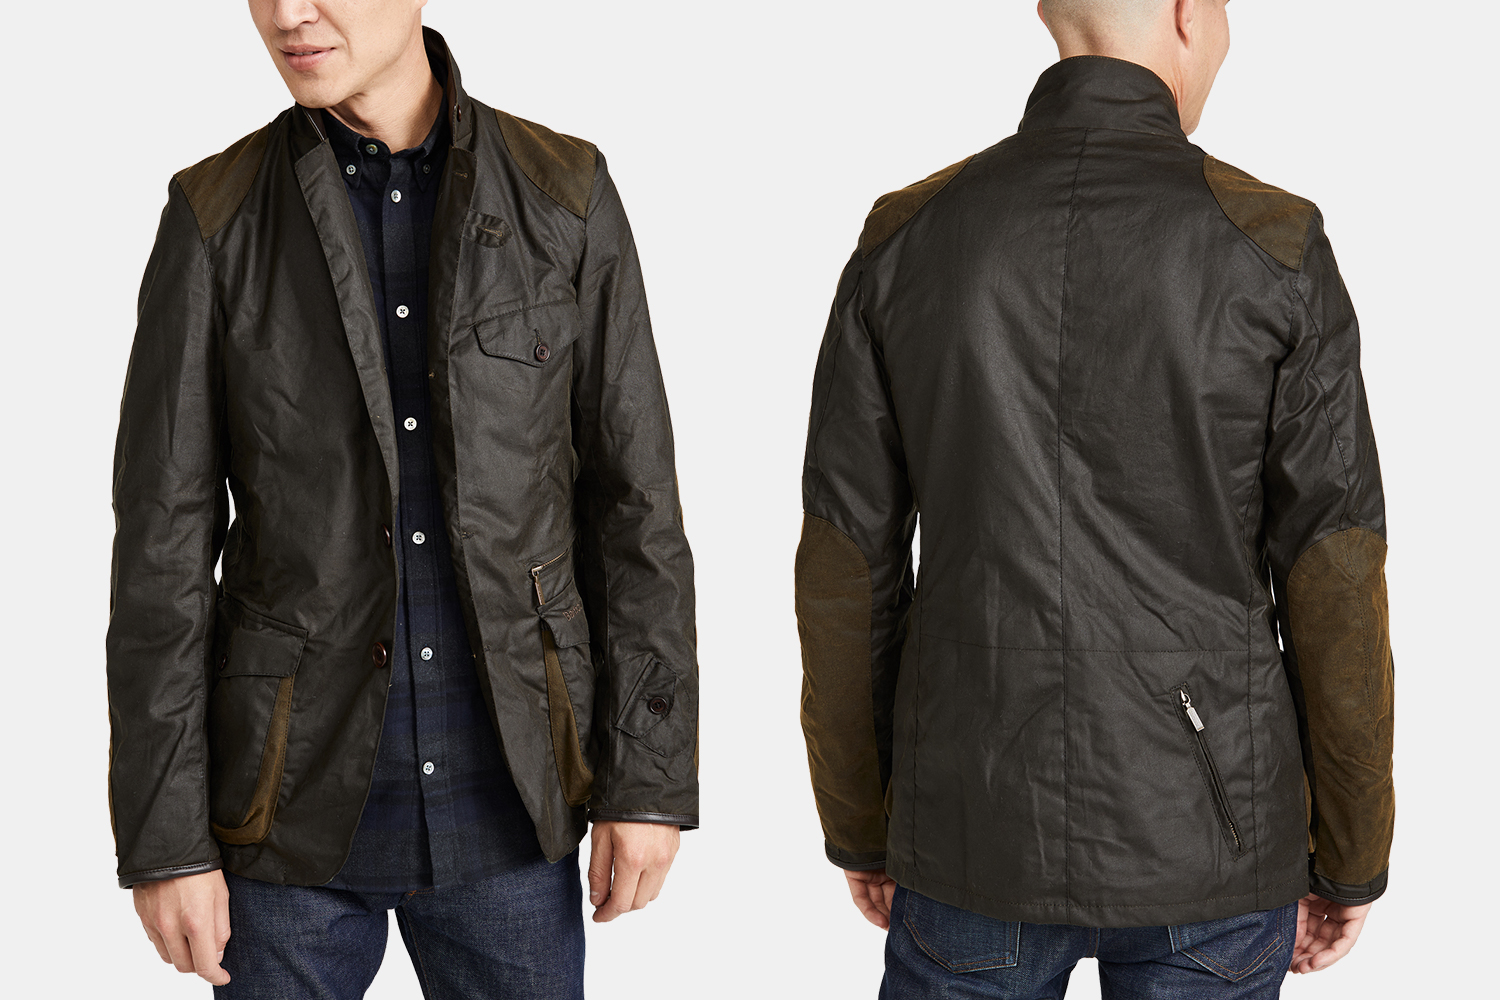 James Bond Skyfall coat from Barbour